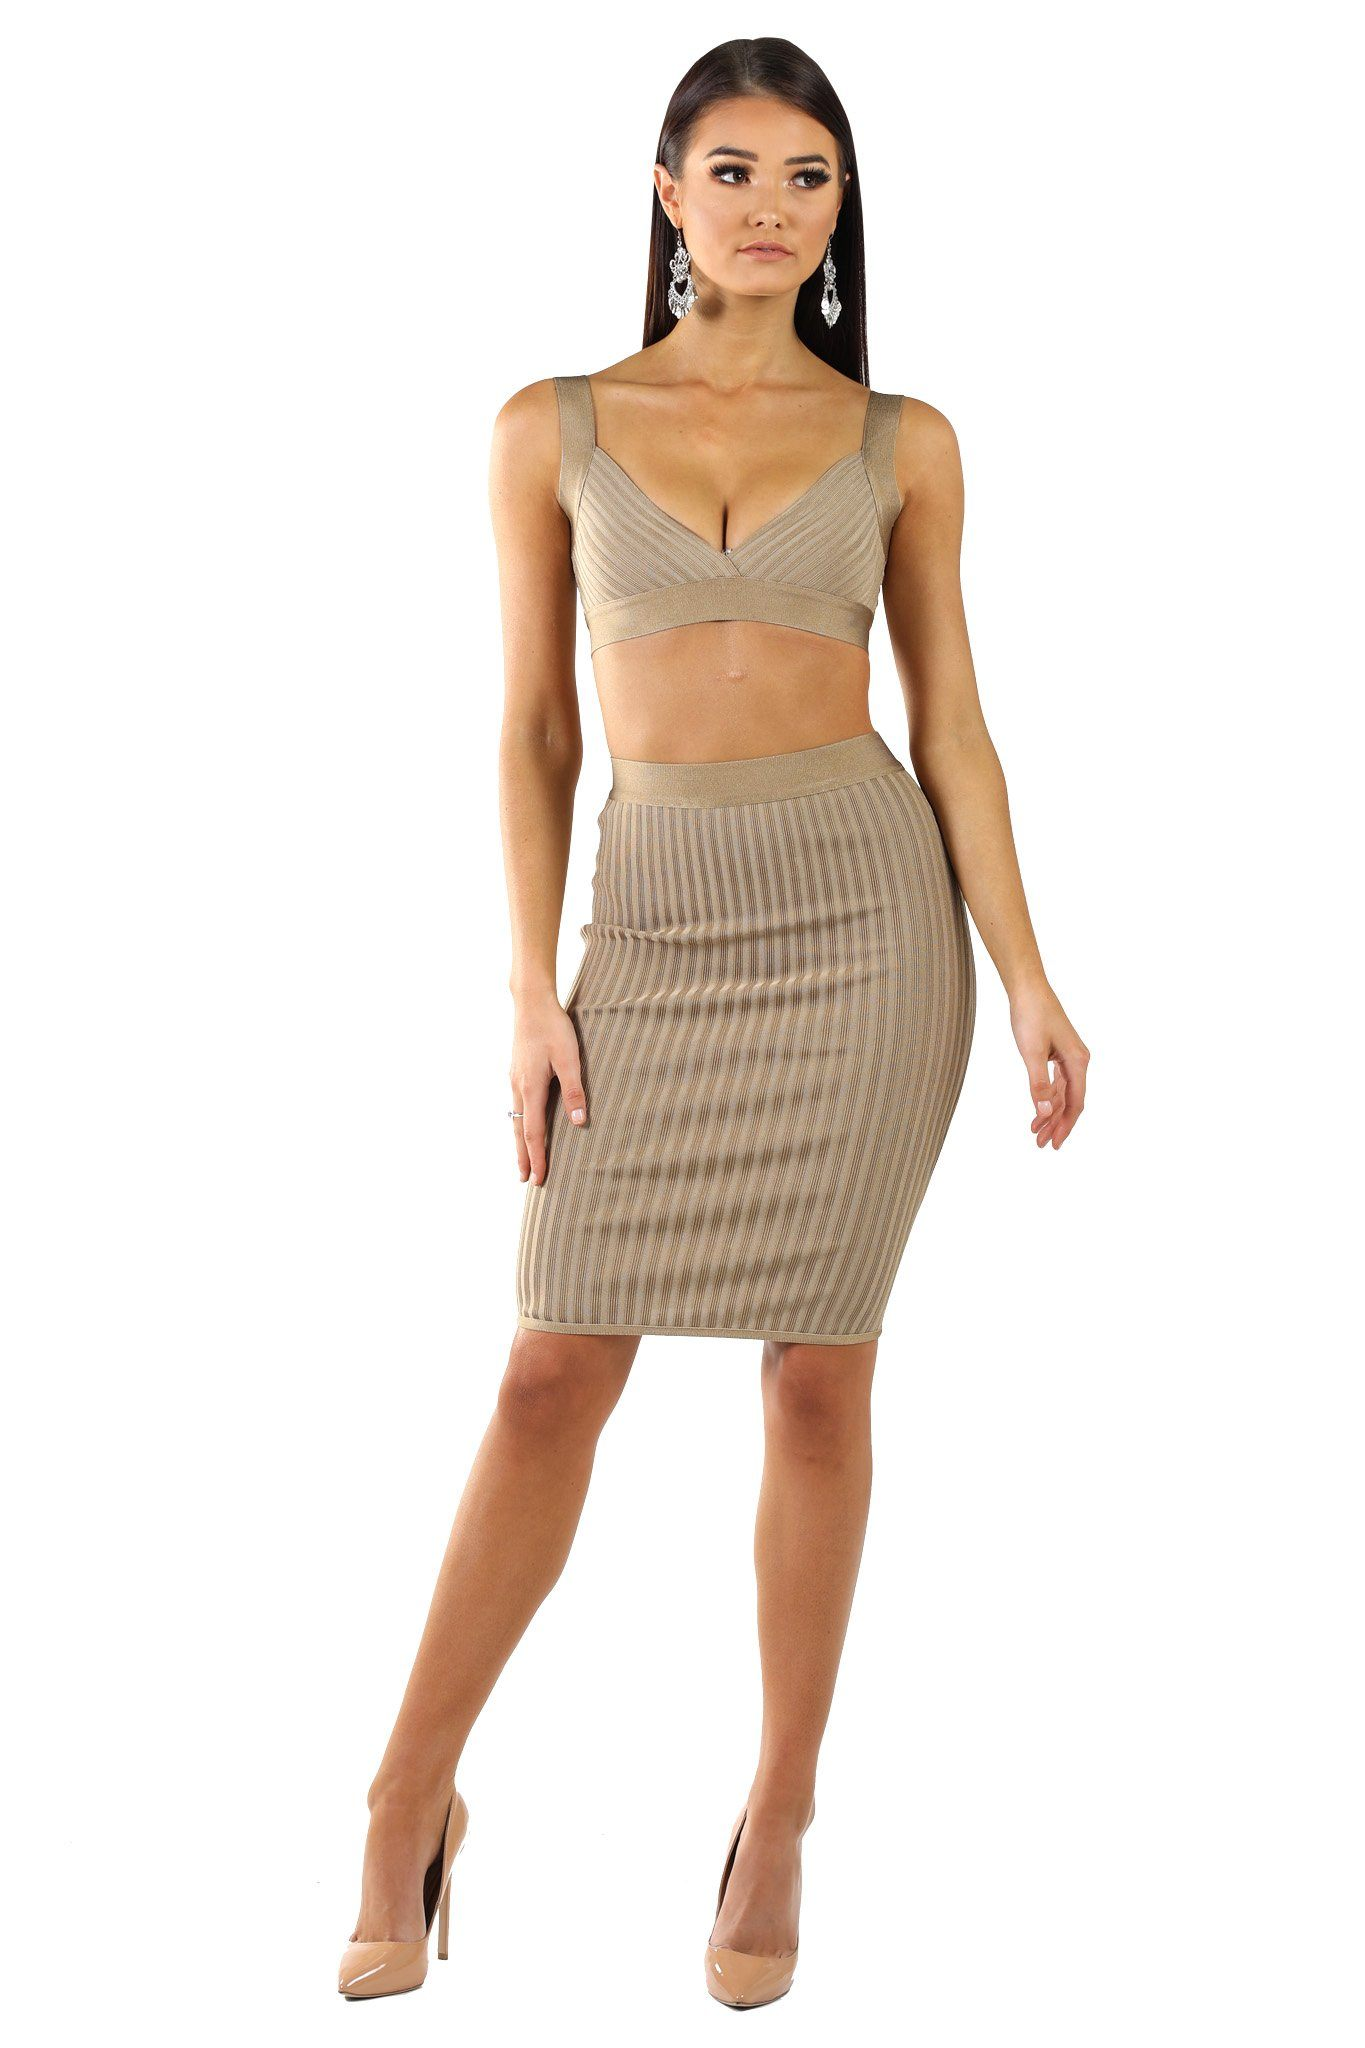 Two-piece matching set including bralette-style top and knee-length pencil skirt both made from stretchy lightweight ribbed bandage fabric in light brown colour